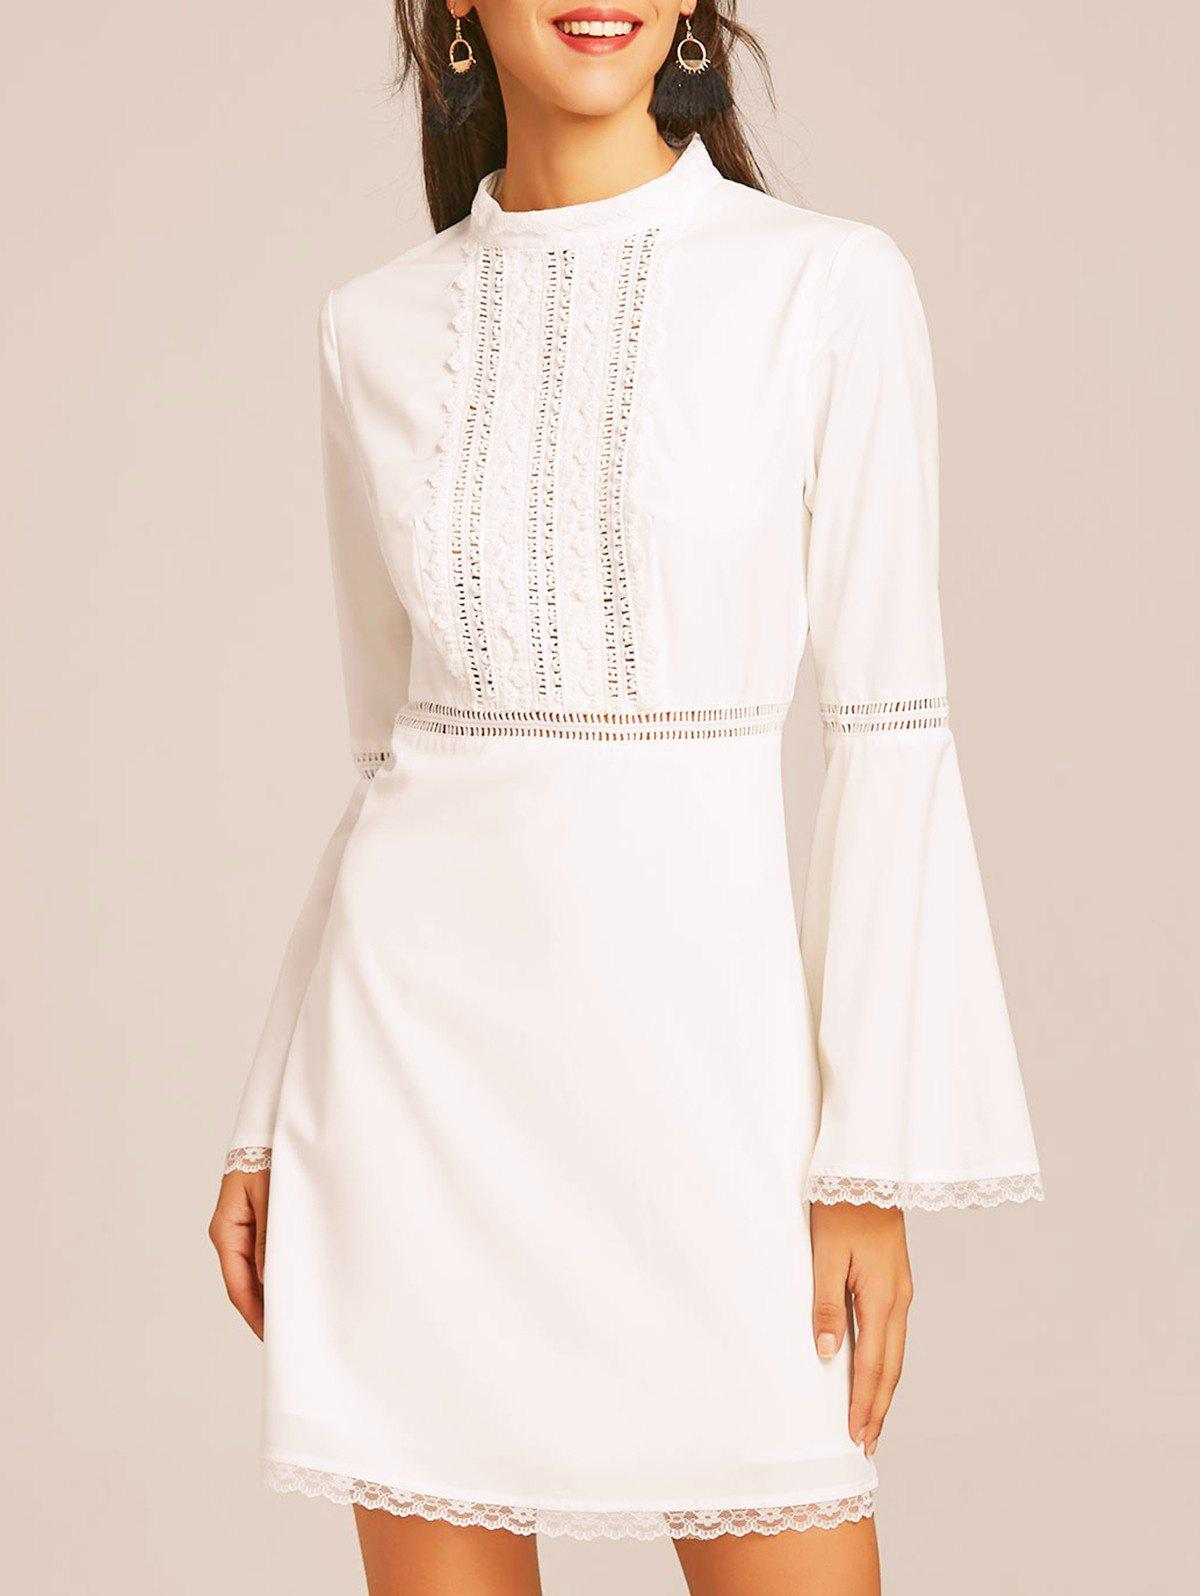 Lace Trim Bell Sleeve Flare Dress - WHITE M